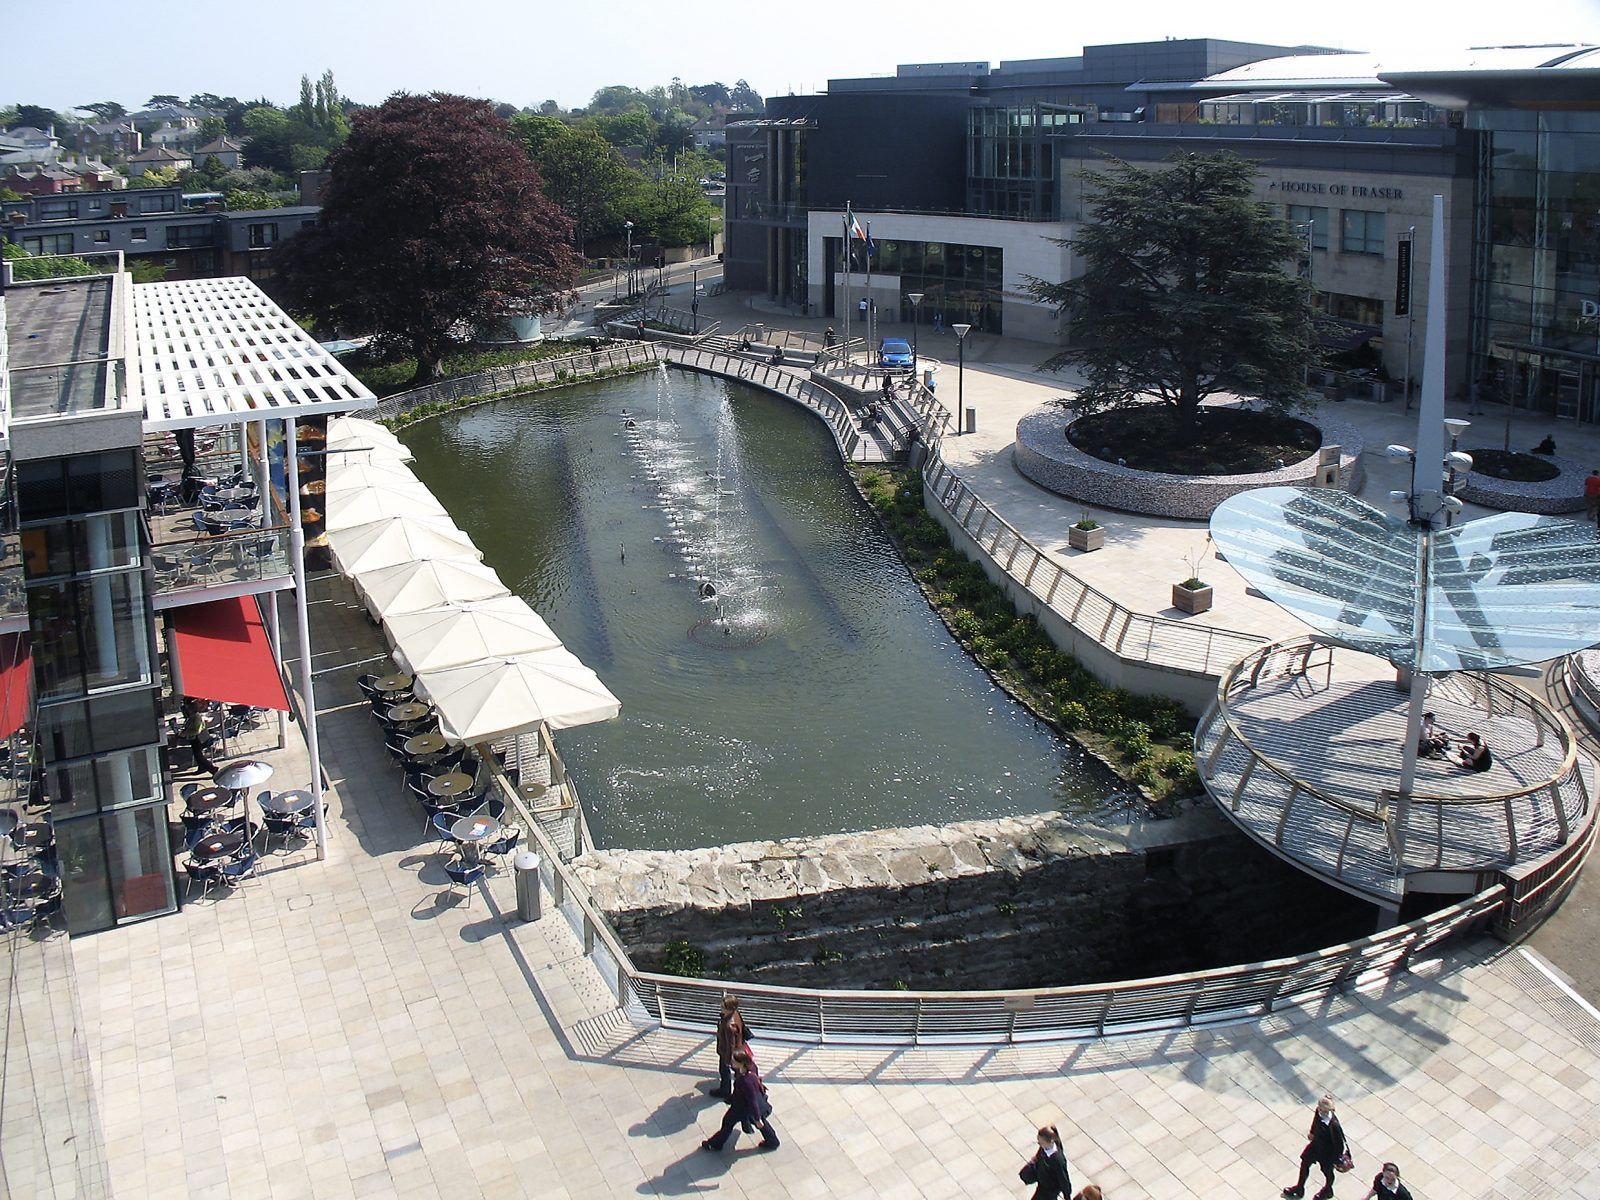 Dundrum Town pond aerial view